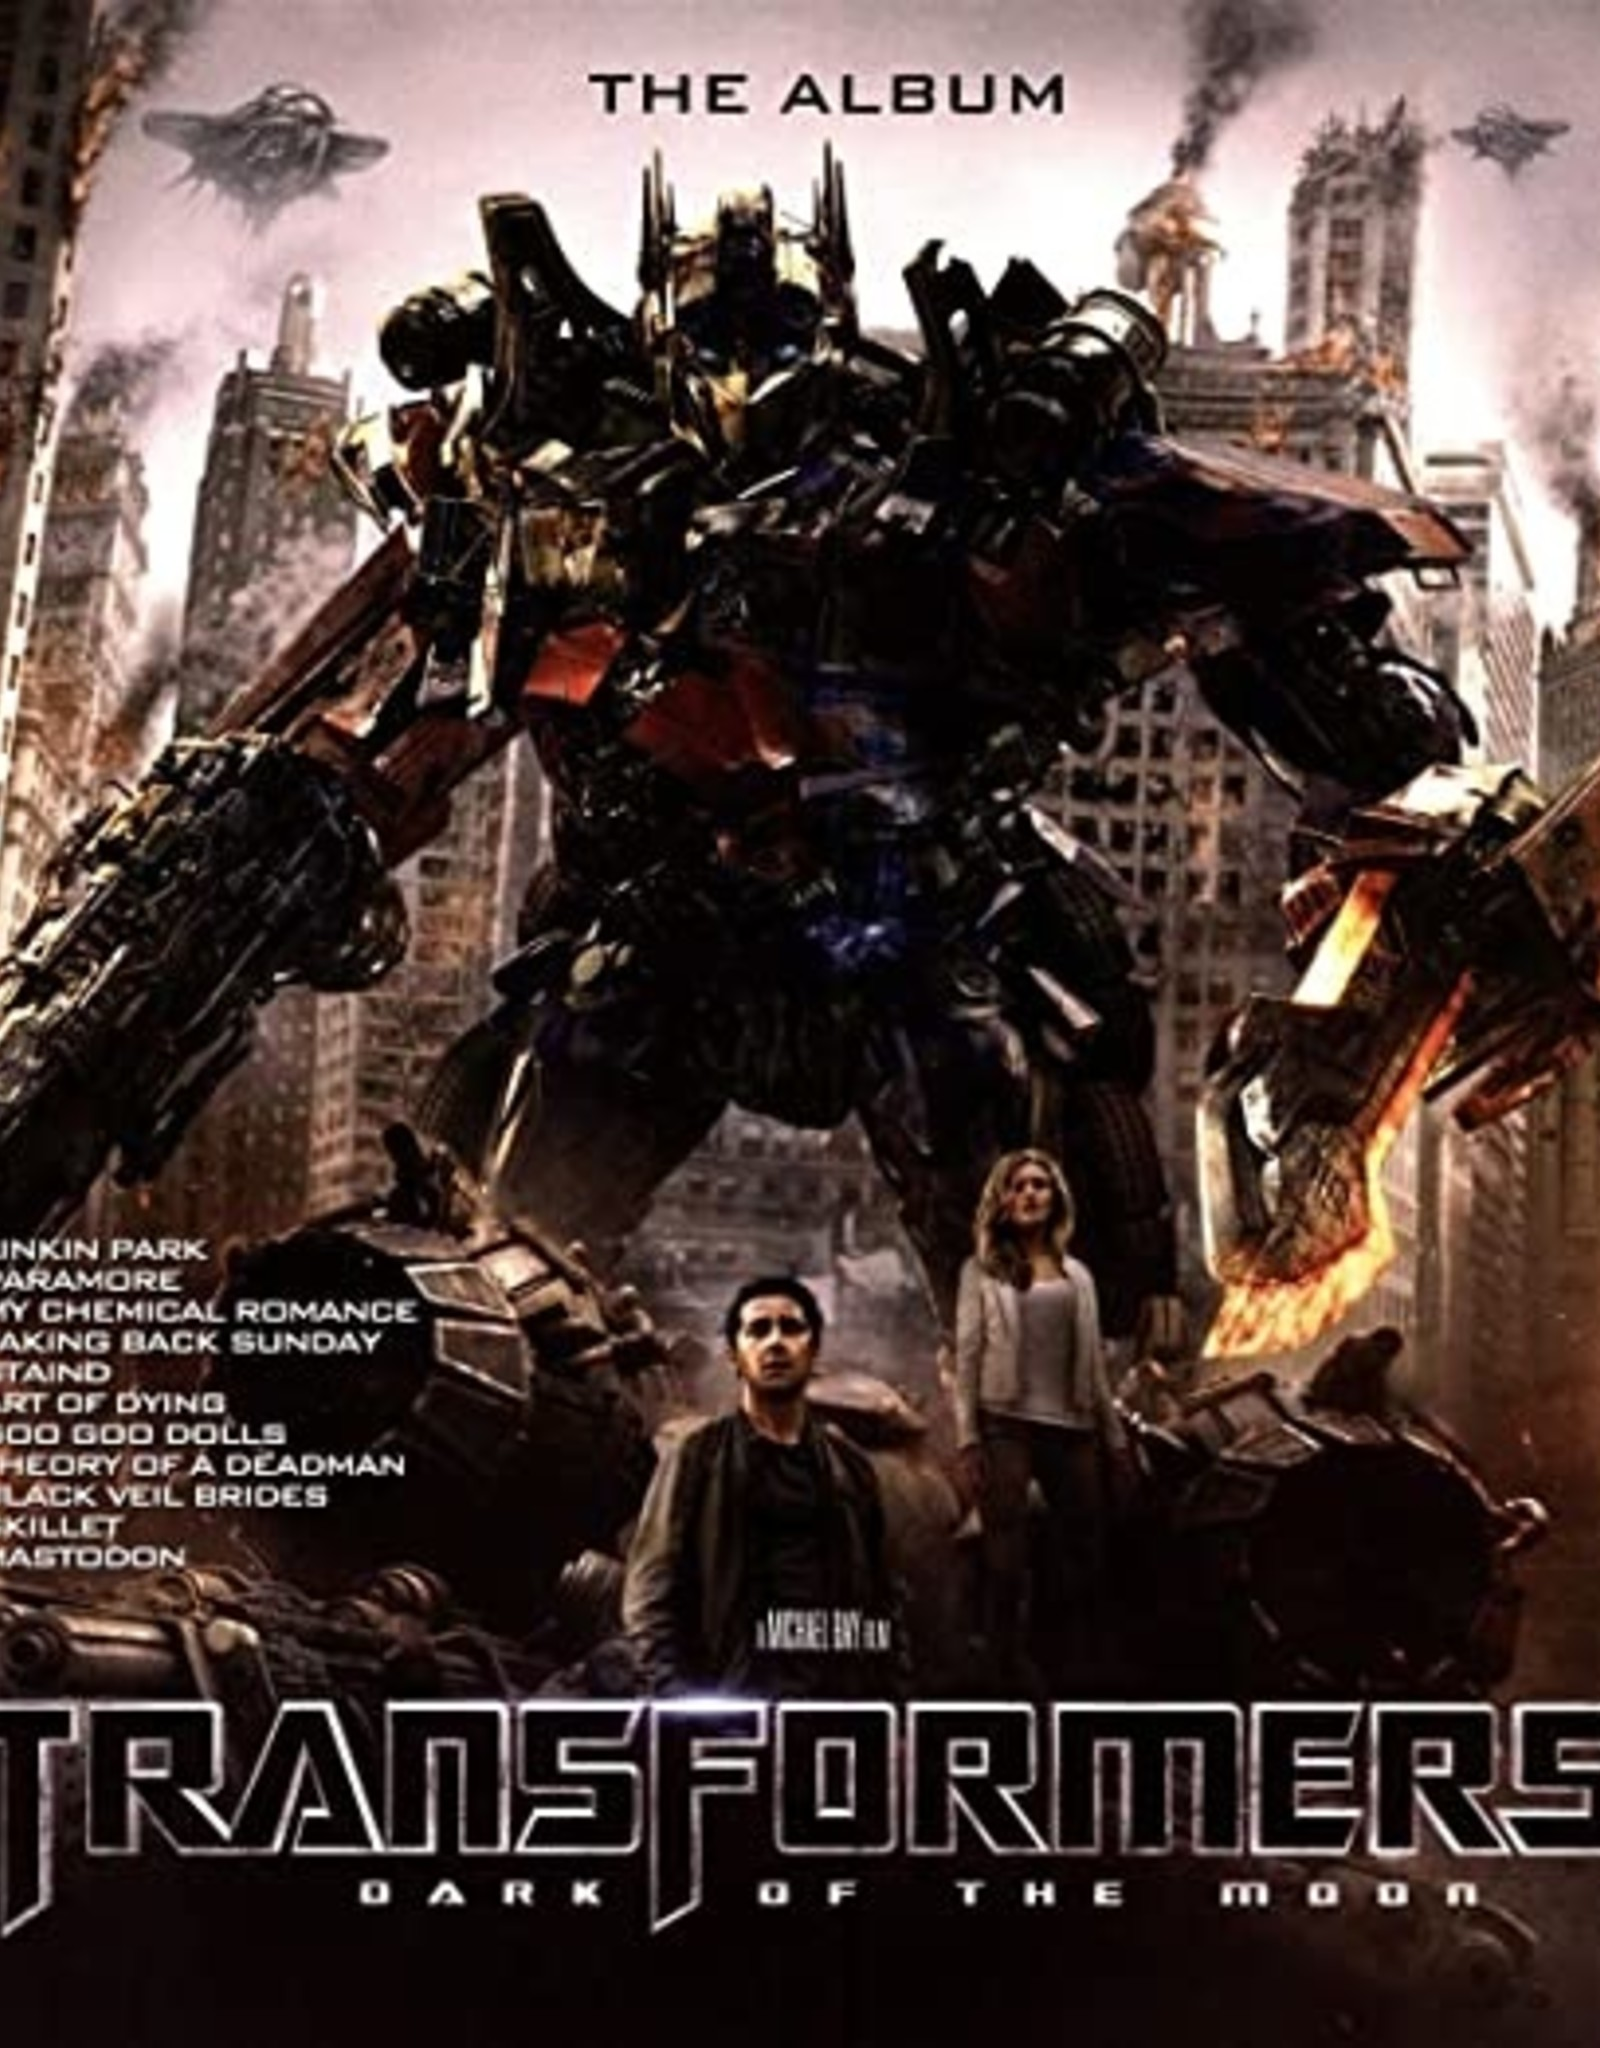 Transformers: Dark Of The Moon - Transformers Dark Of The Moon - The Album (Brown Lp) (RSD 2019)